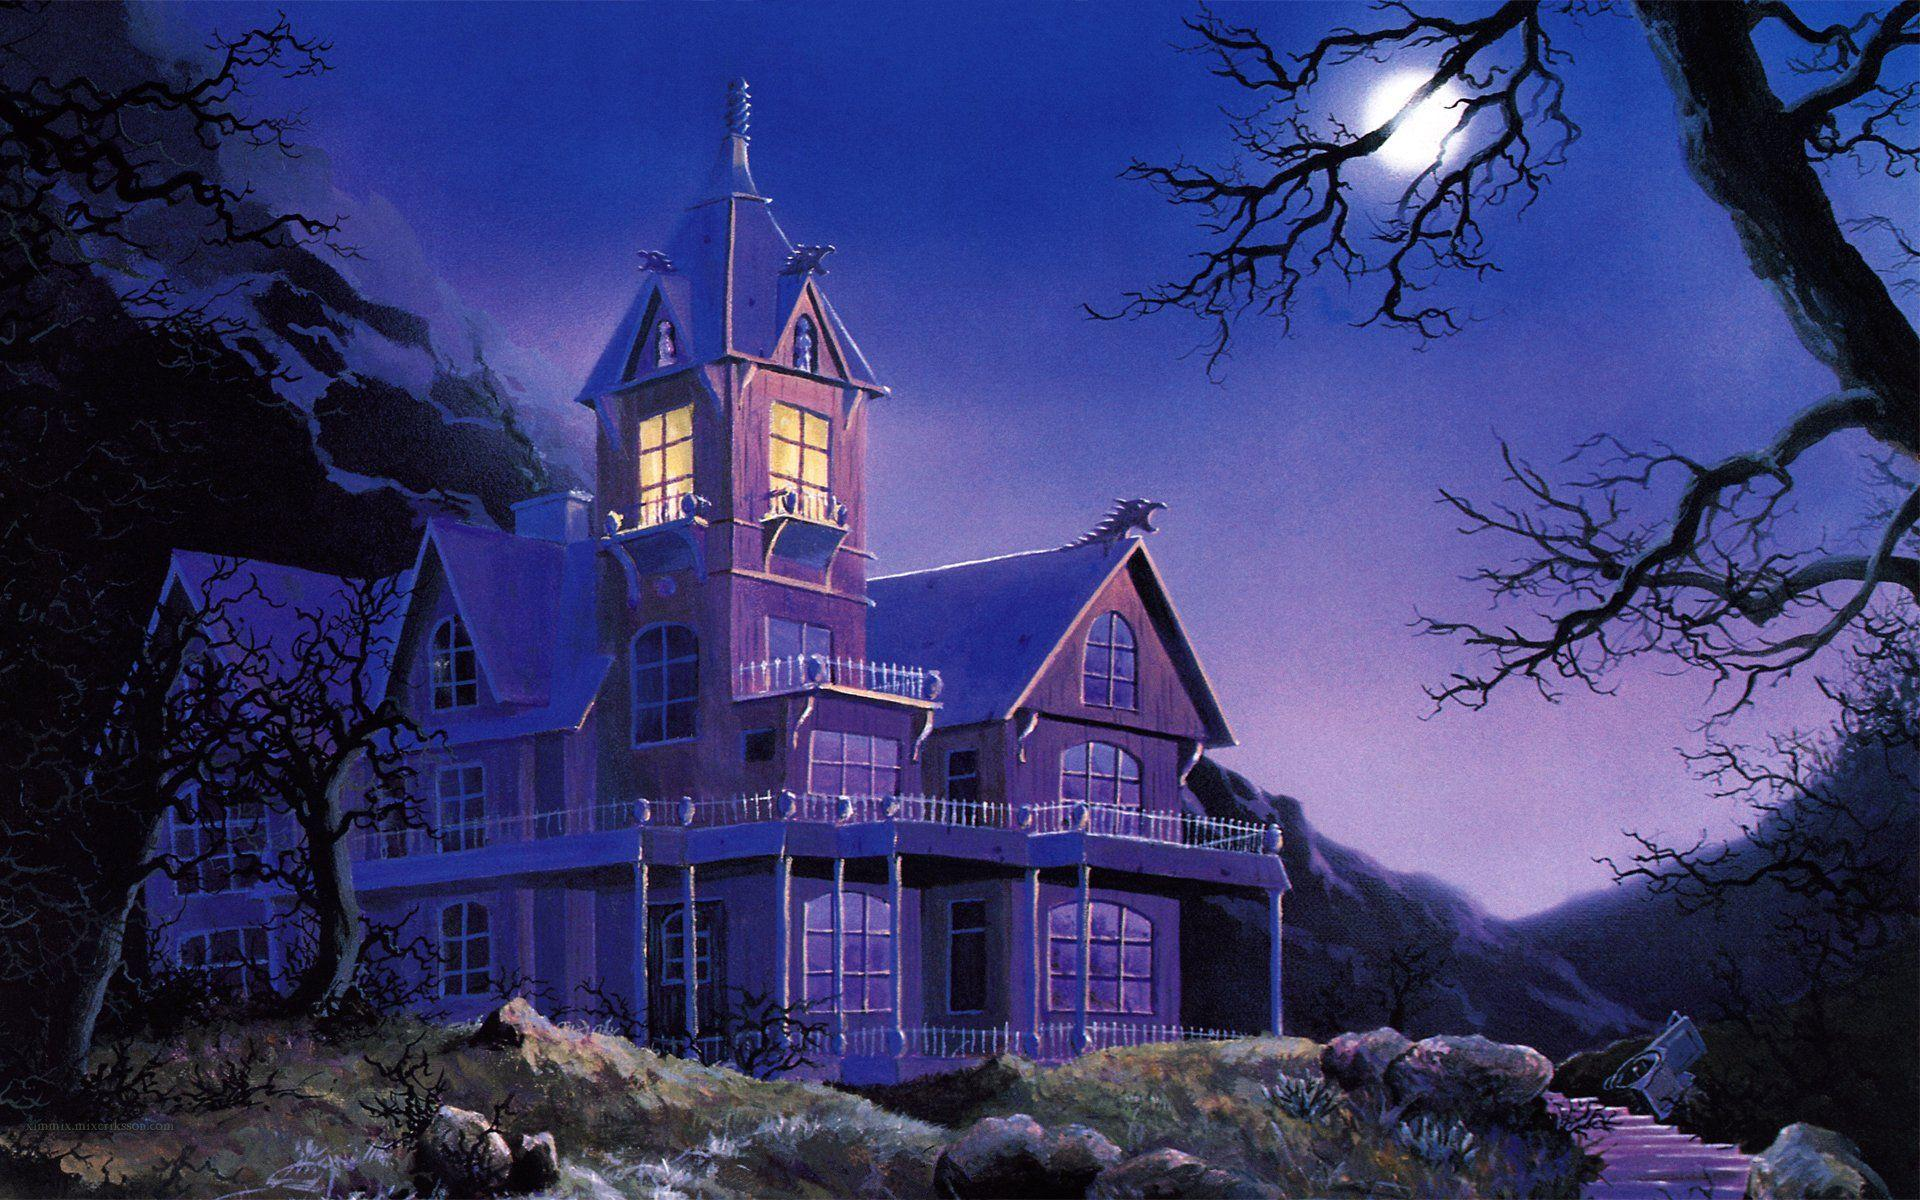 Haunted Houses Wallpapers - Wallpaper Cave